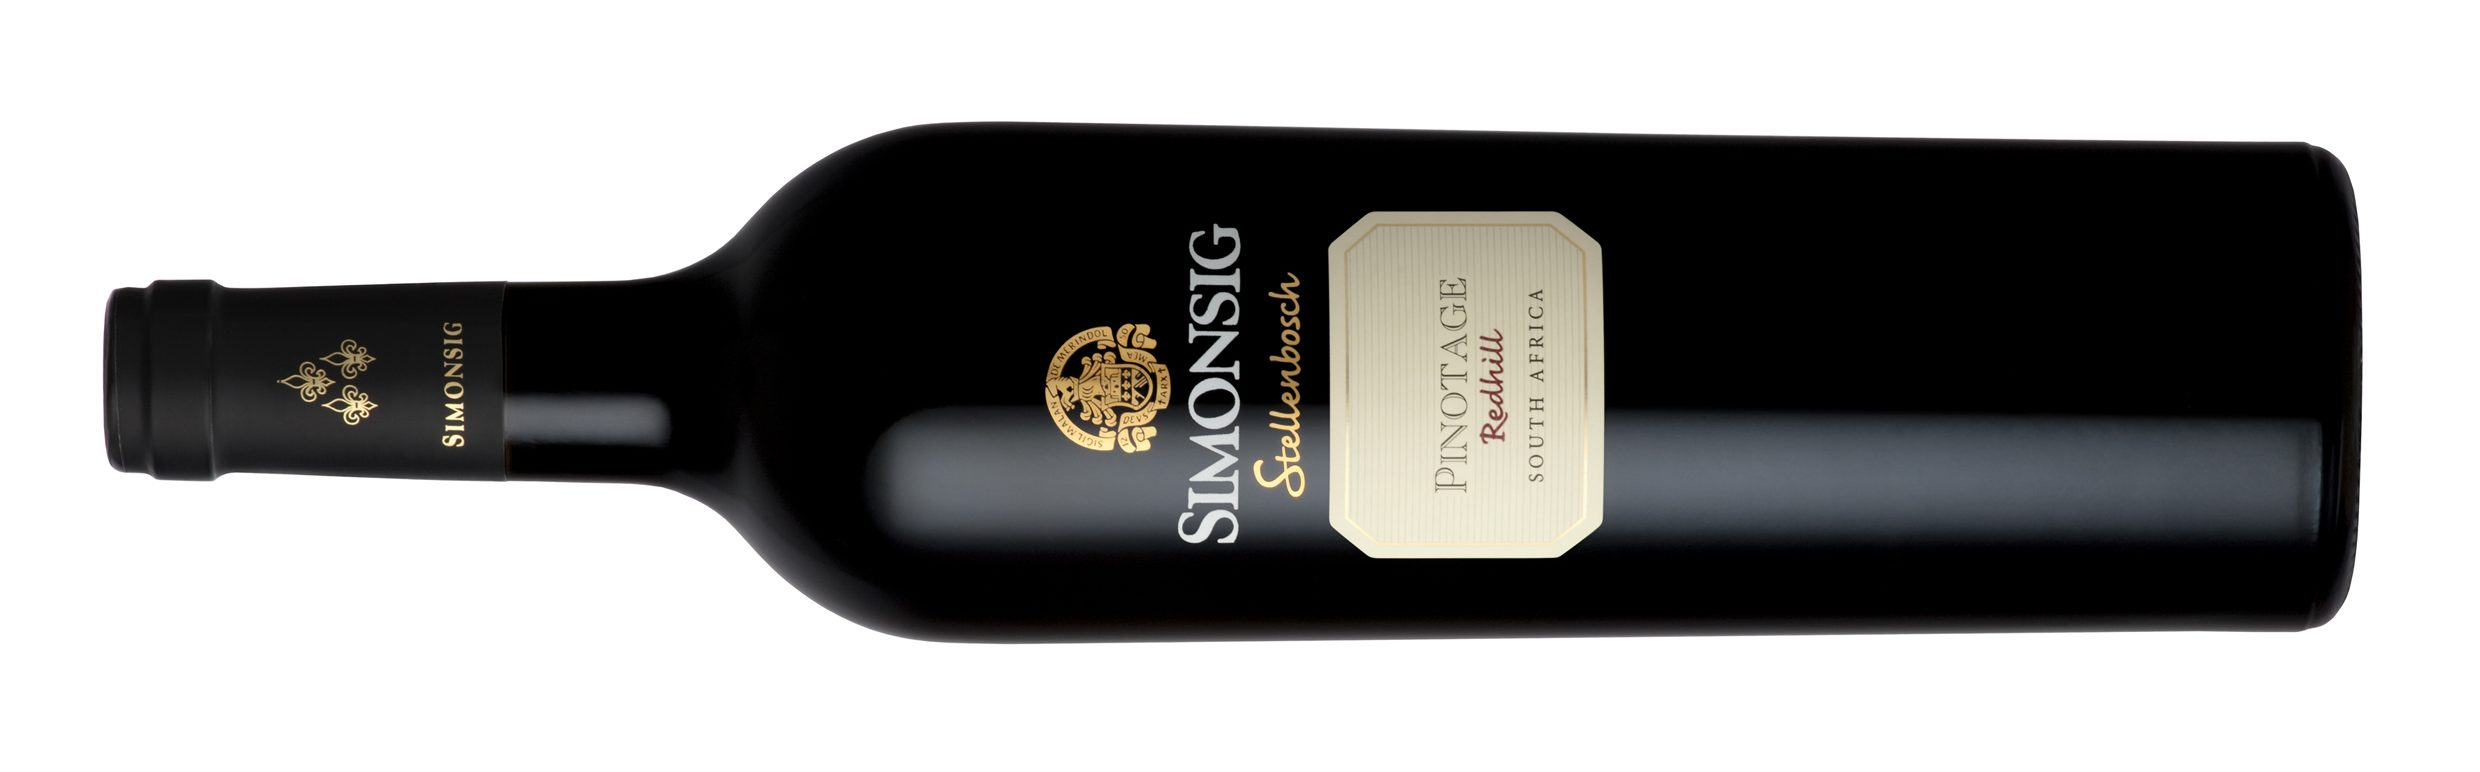 Simonsig Redhill Pinotage Nets Absa Top 10 For Seventh Time photo